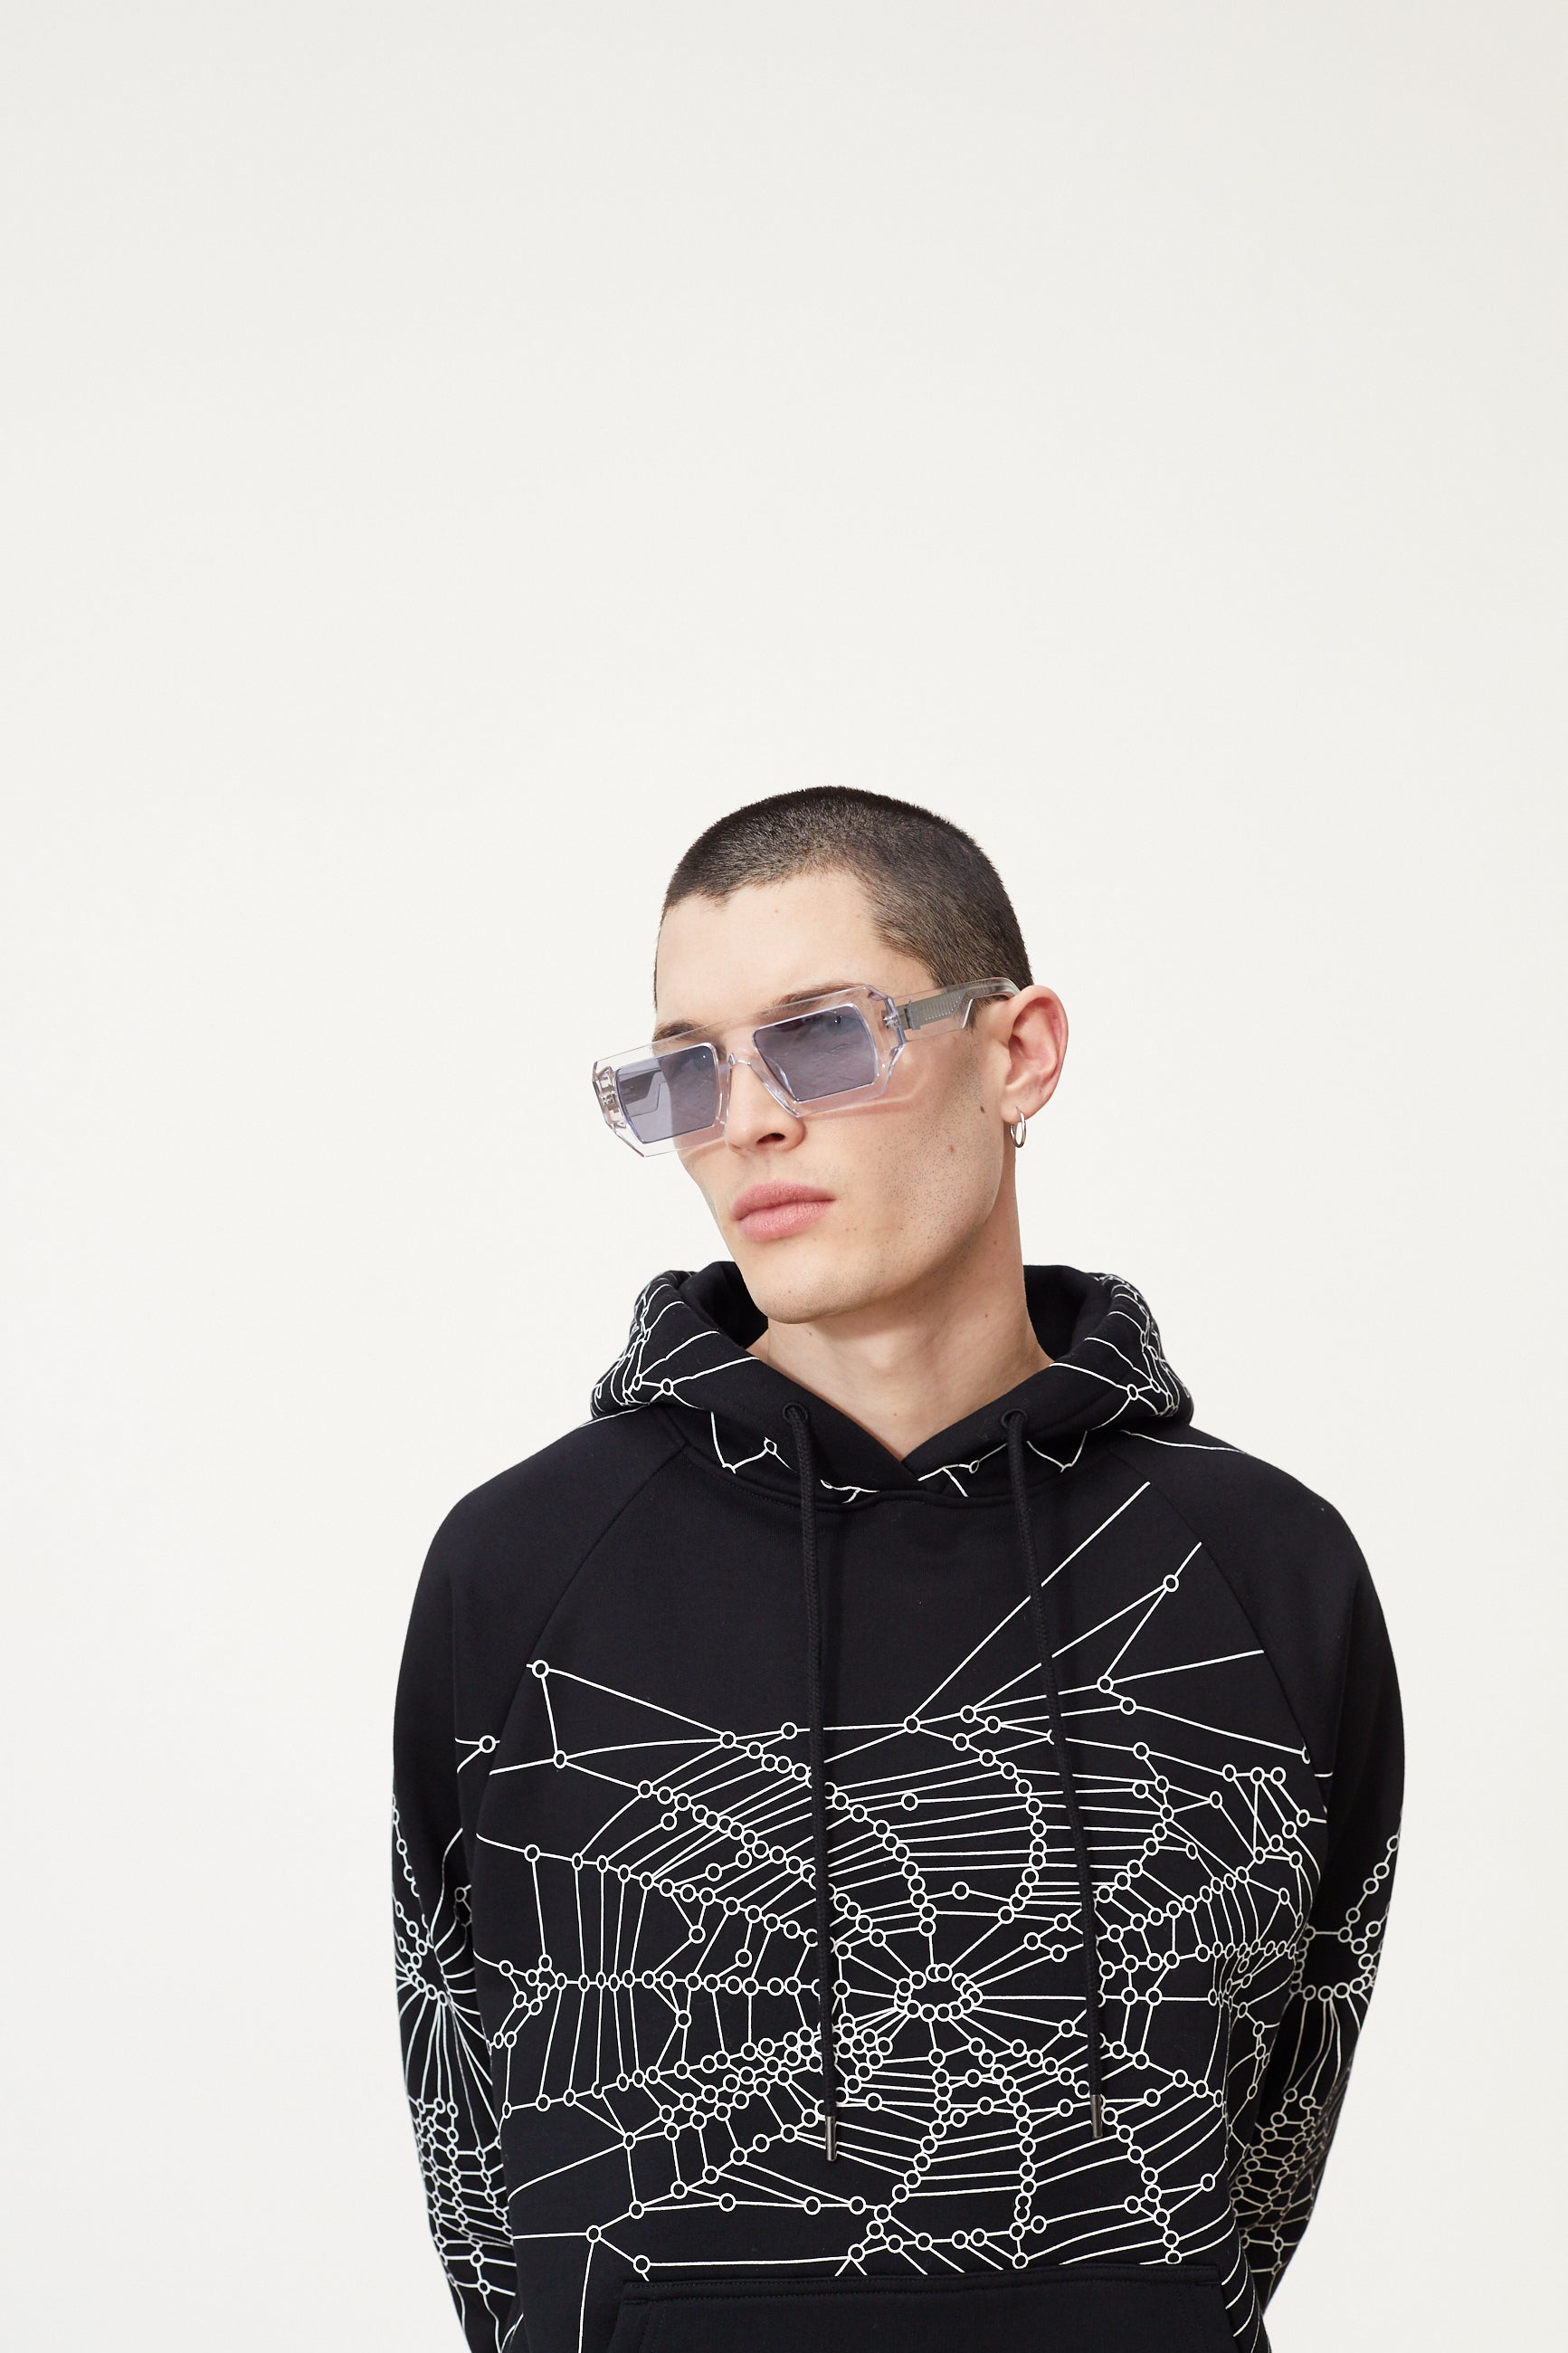 Études Racing Hood Spider Web Black Sweatshirt 4